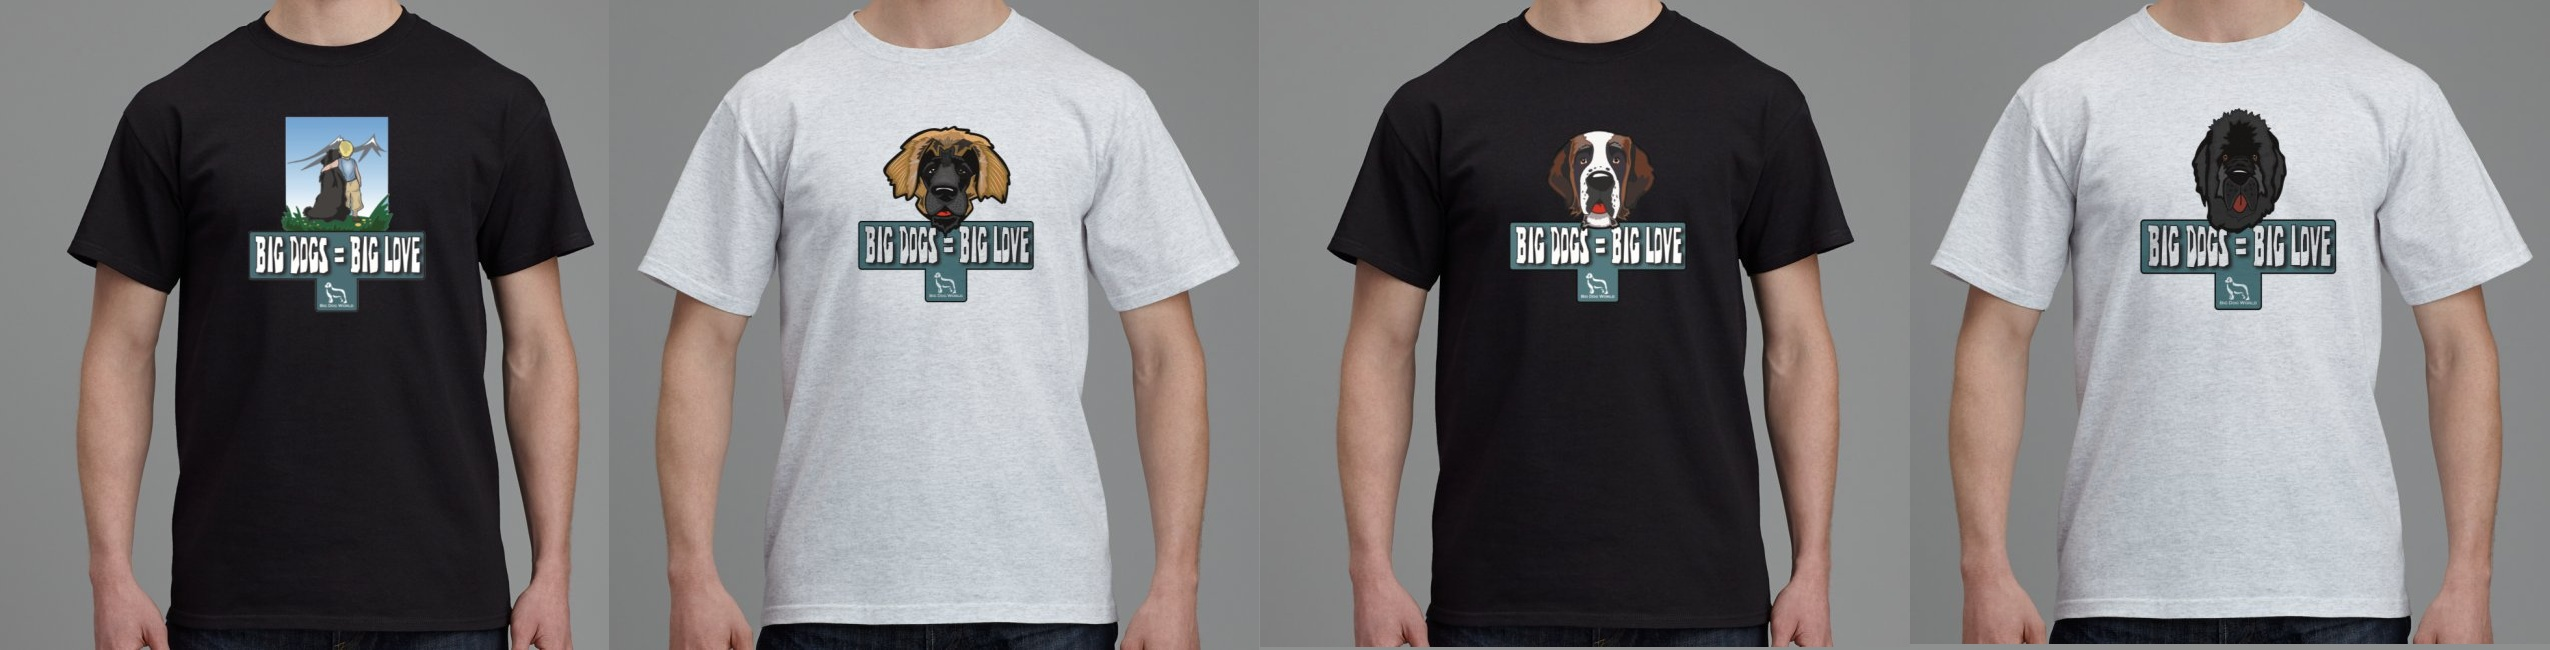 New Big Dog World T-Shirts